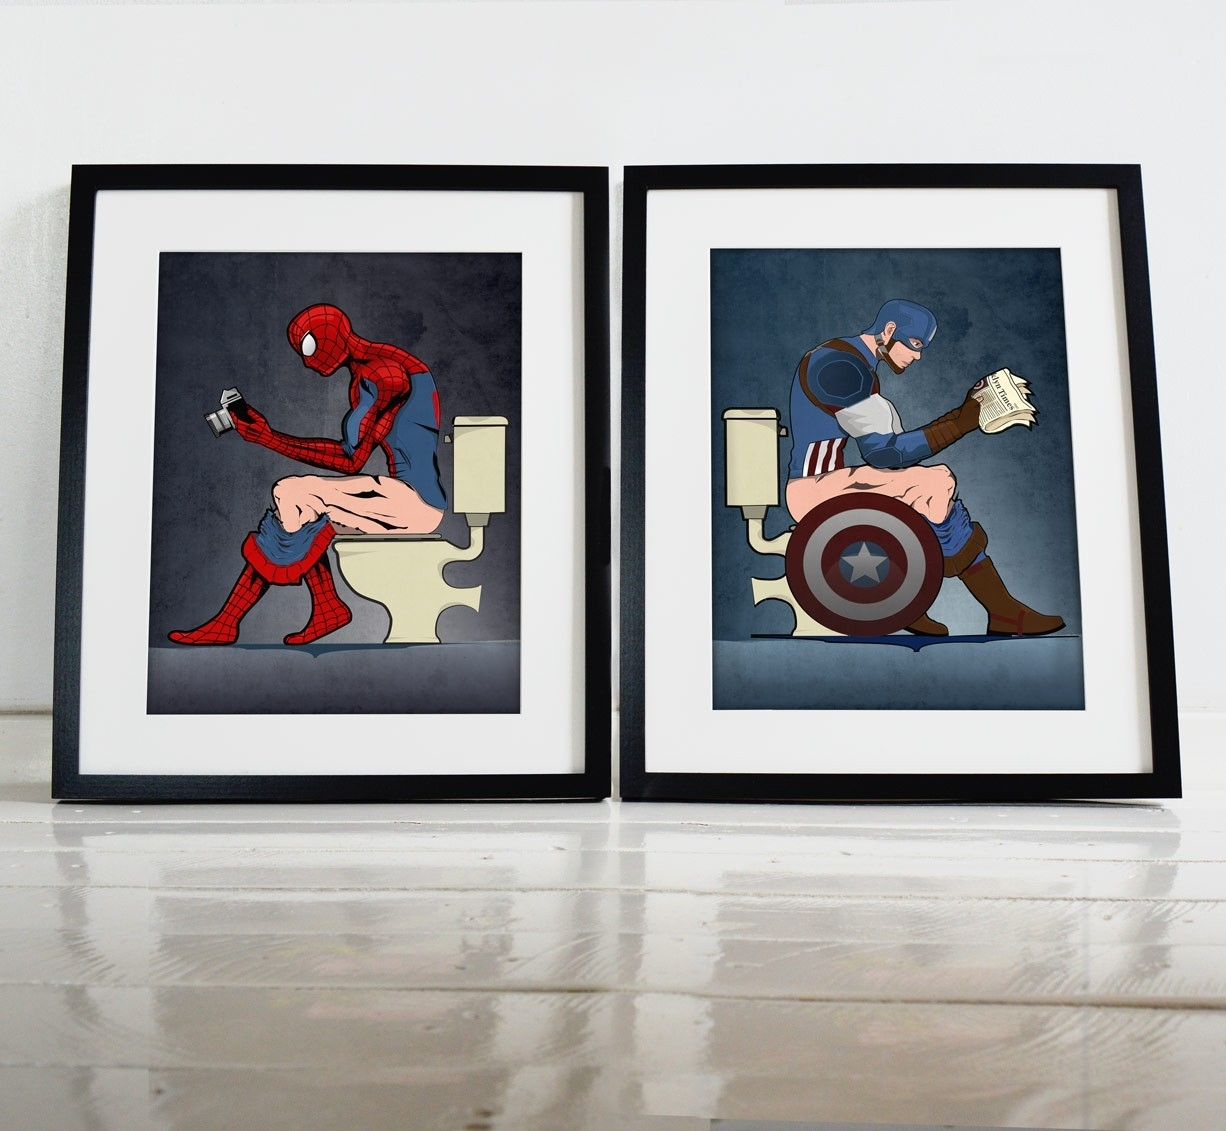 Superhero Spiderman And Captain America On The Toilet Poster Wall Intended For Most Up To Date Captain America Wall Art (View 13 of 15)